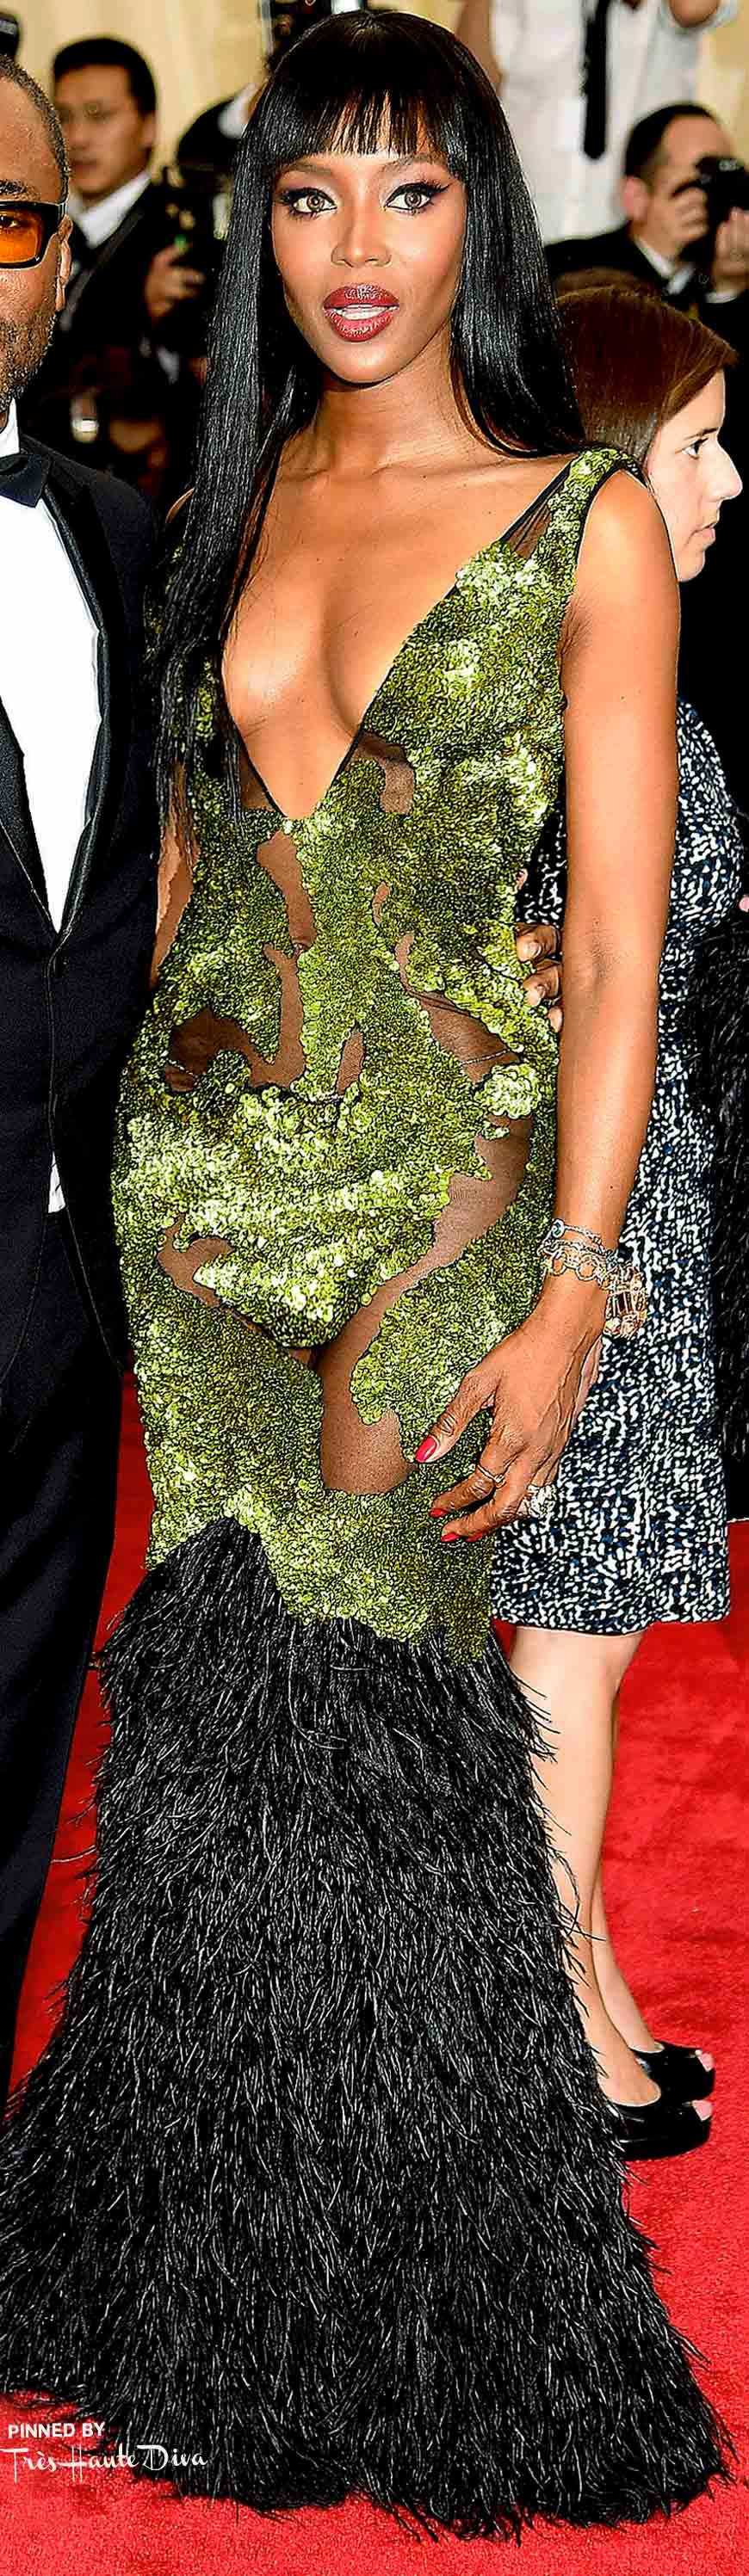 Naomi Campbell in Burberry Getty Images/ Dimitrios Kambouris